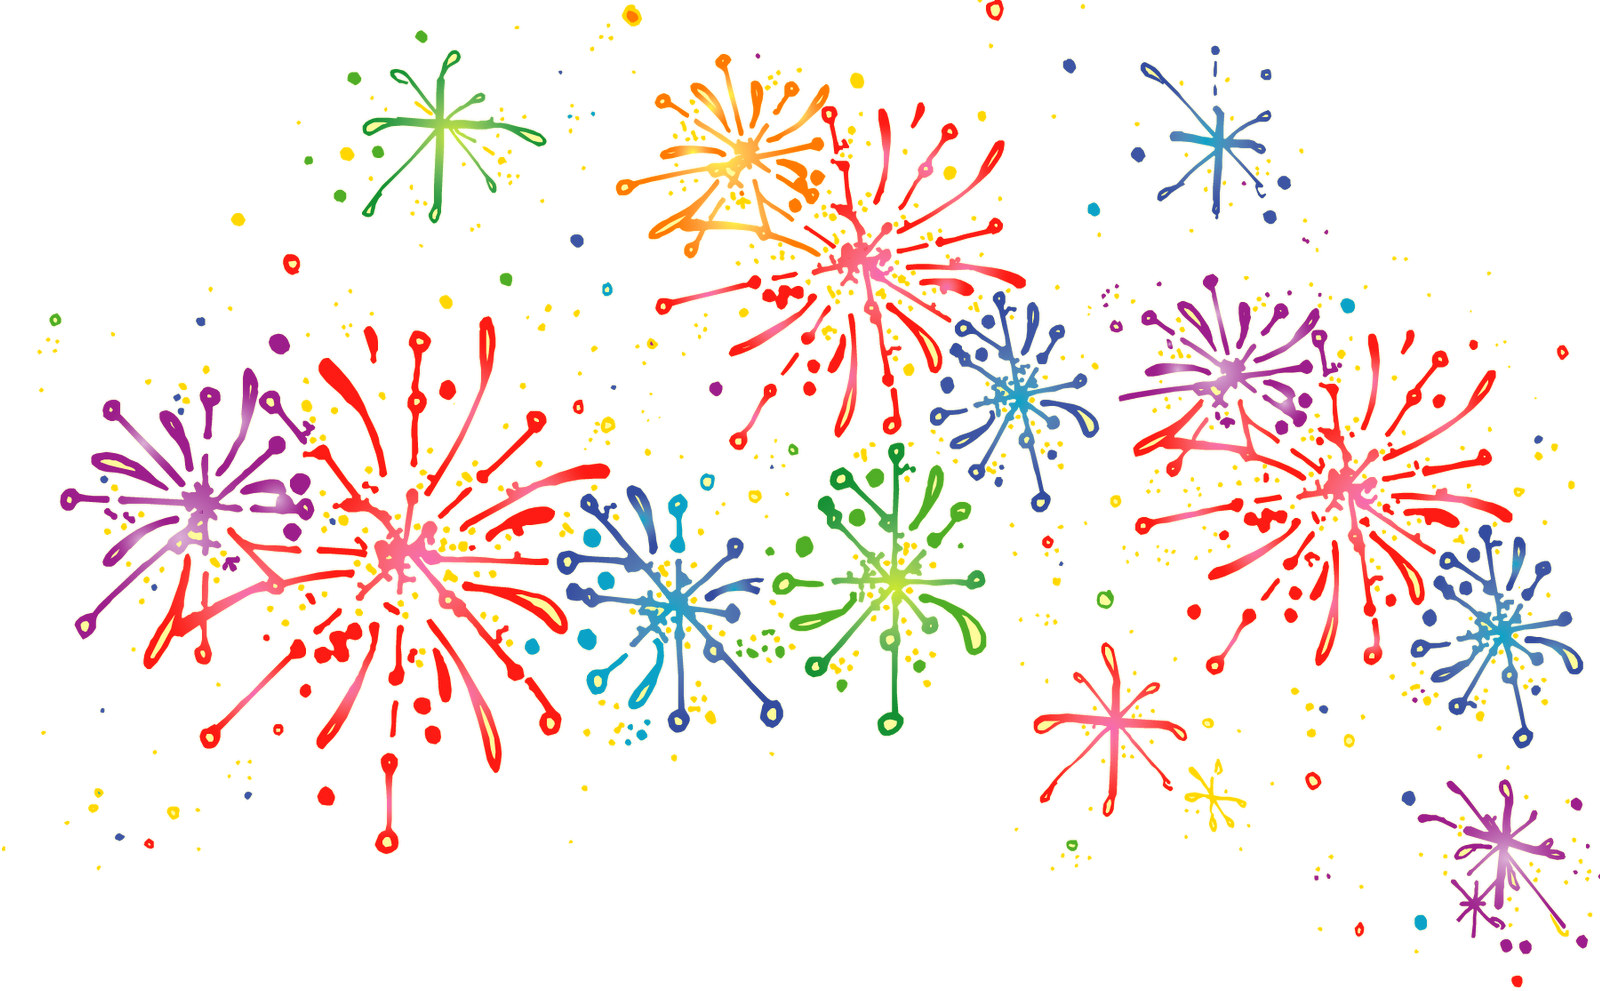 Images of border spacehero. Firework clipart transparent background